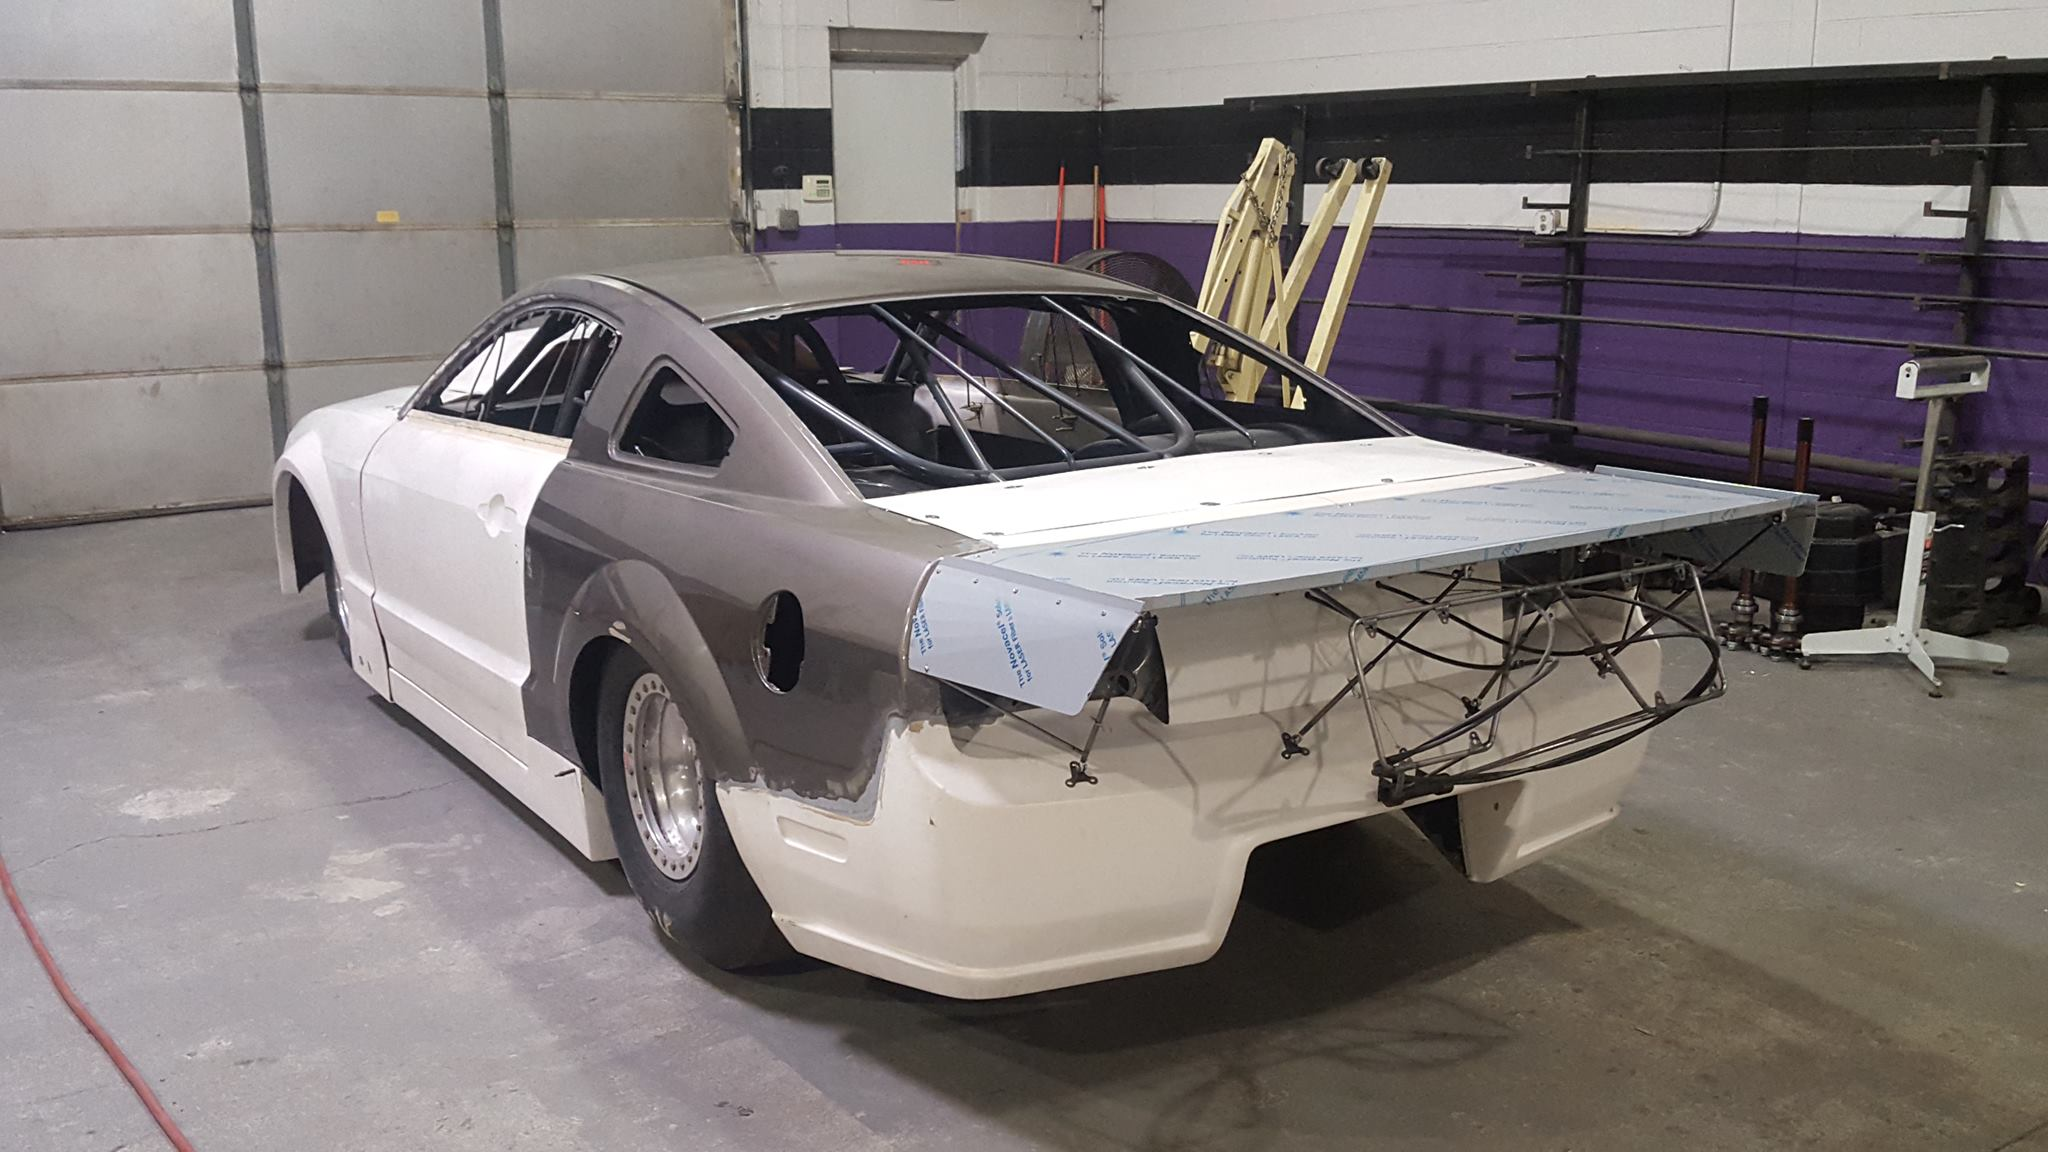 Street Outlaws Boosted Gt New Car